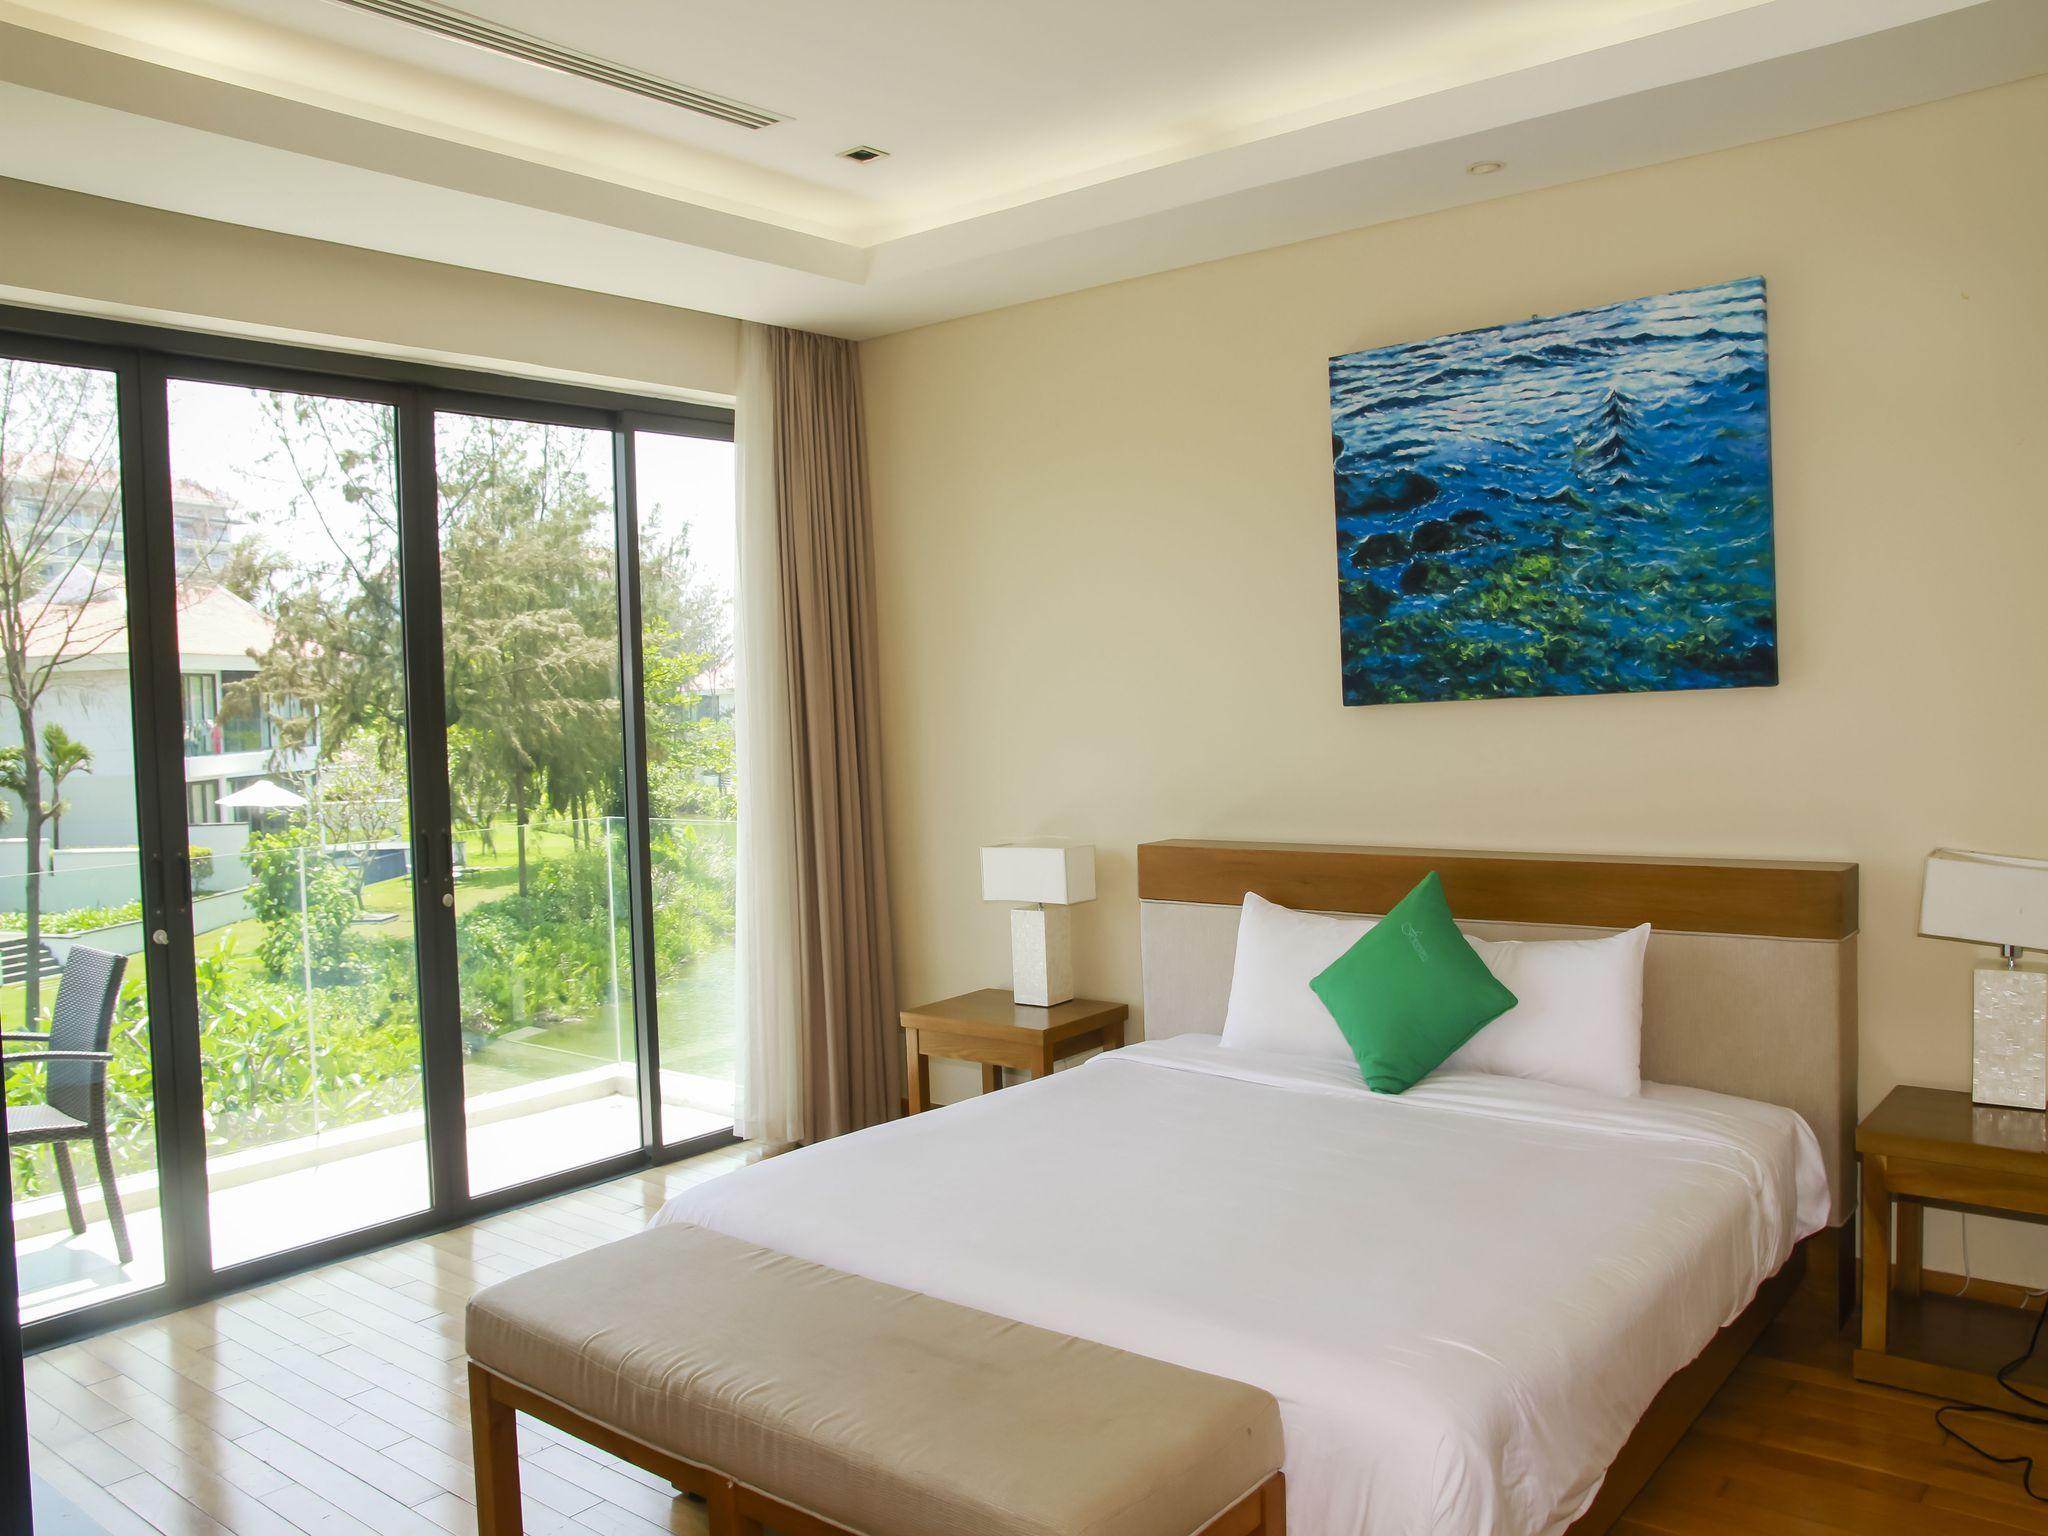 Pool Villa With 2BR At 5* Resort In Son Tra